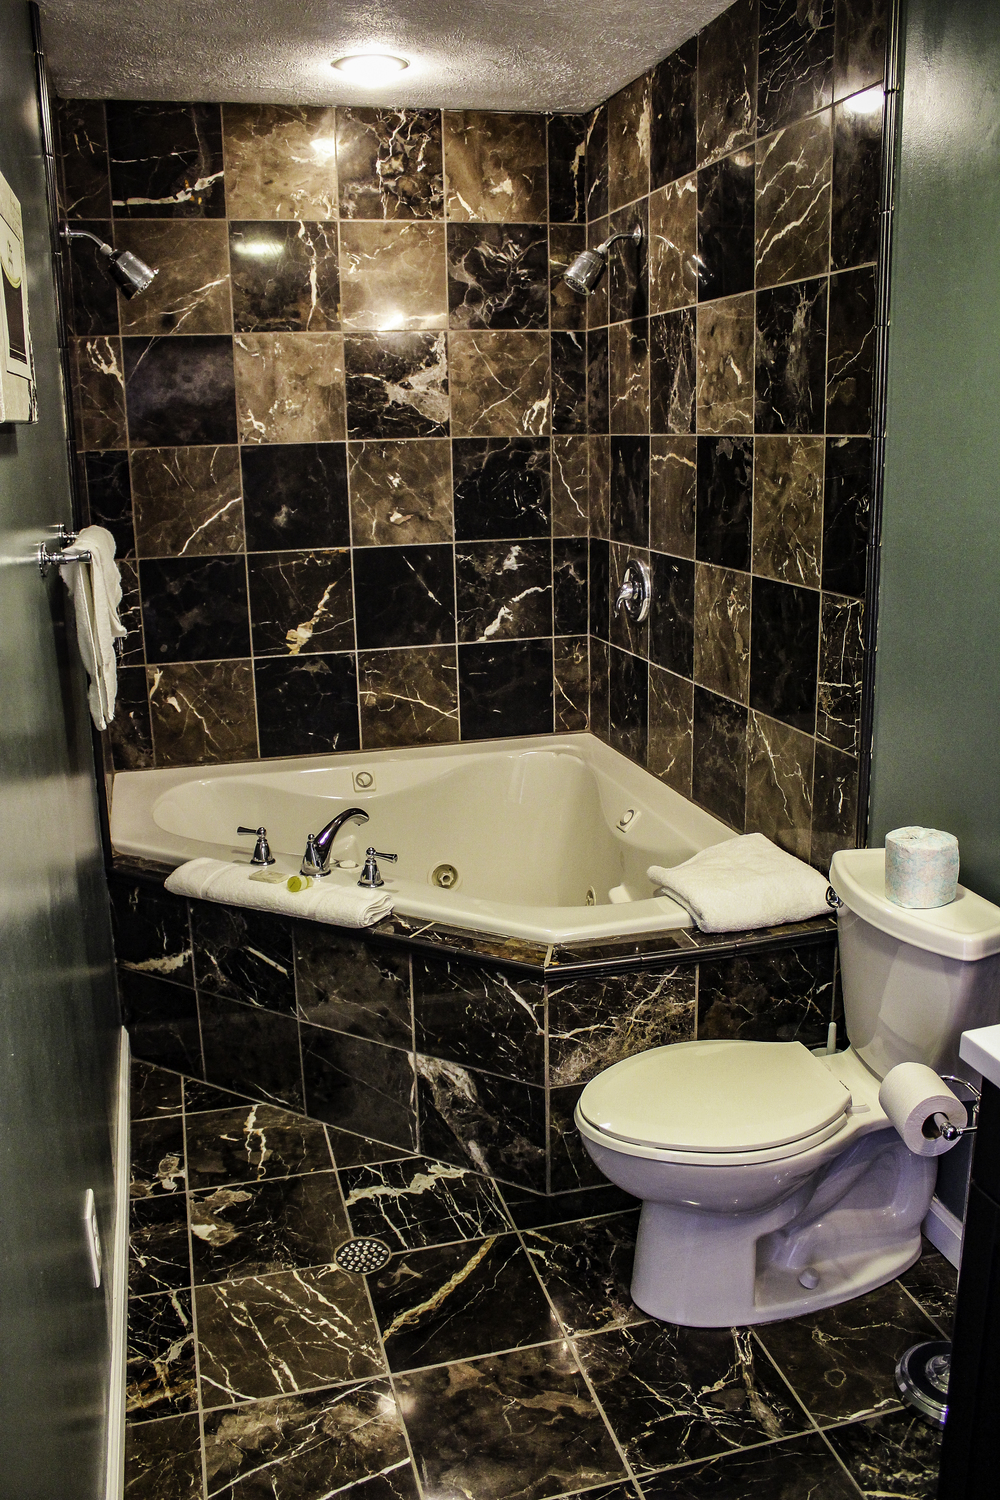 20130610-Cab Sauv Bathroom.JPG